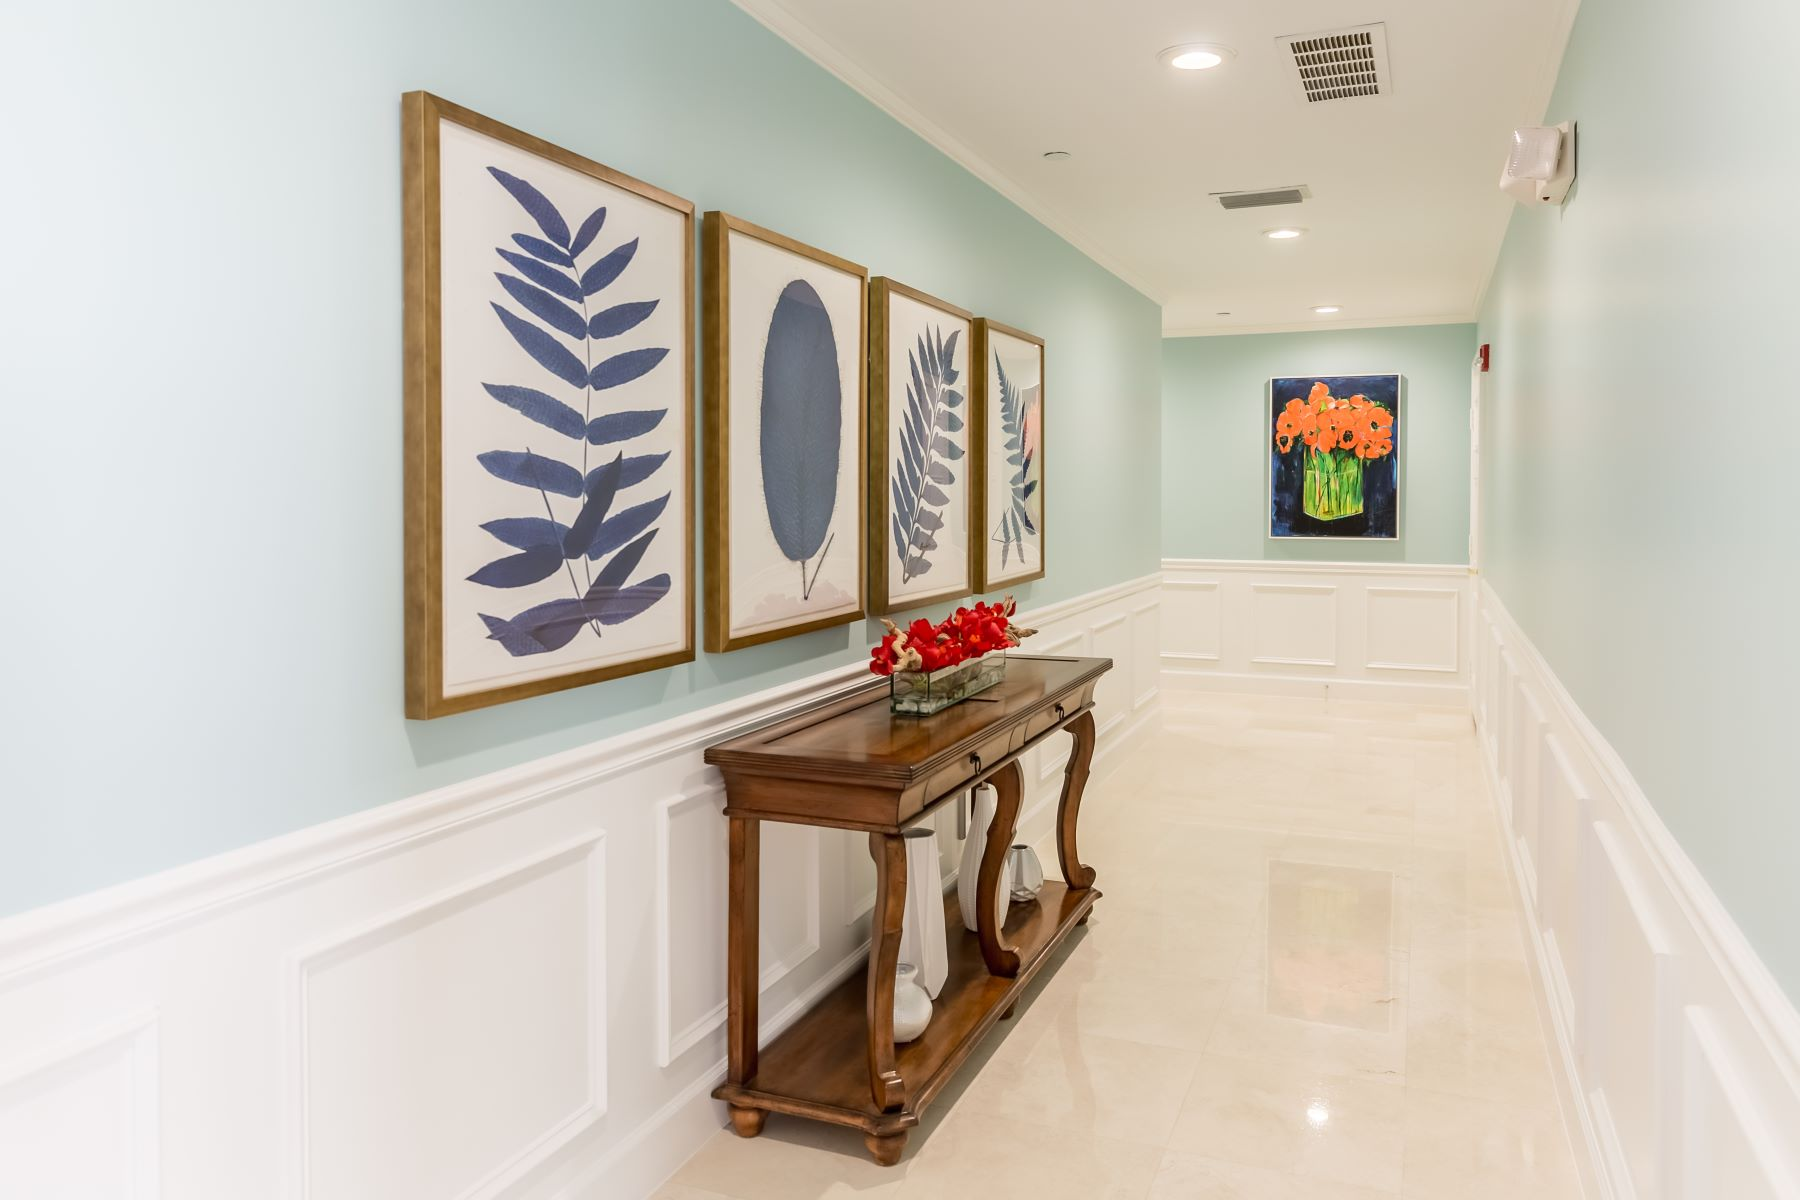 Additional photo for property listing at 8876 N Sea Oaks Way 406 Vero Beach, Florida 32963 United States